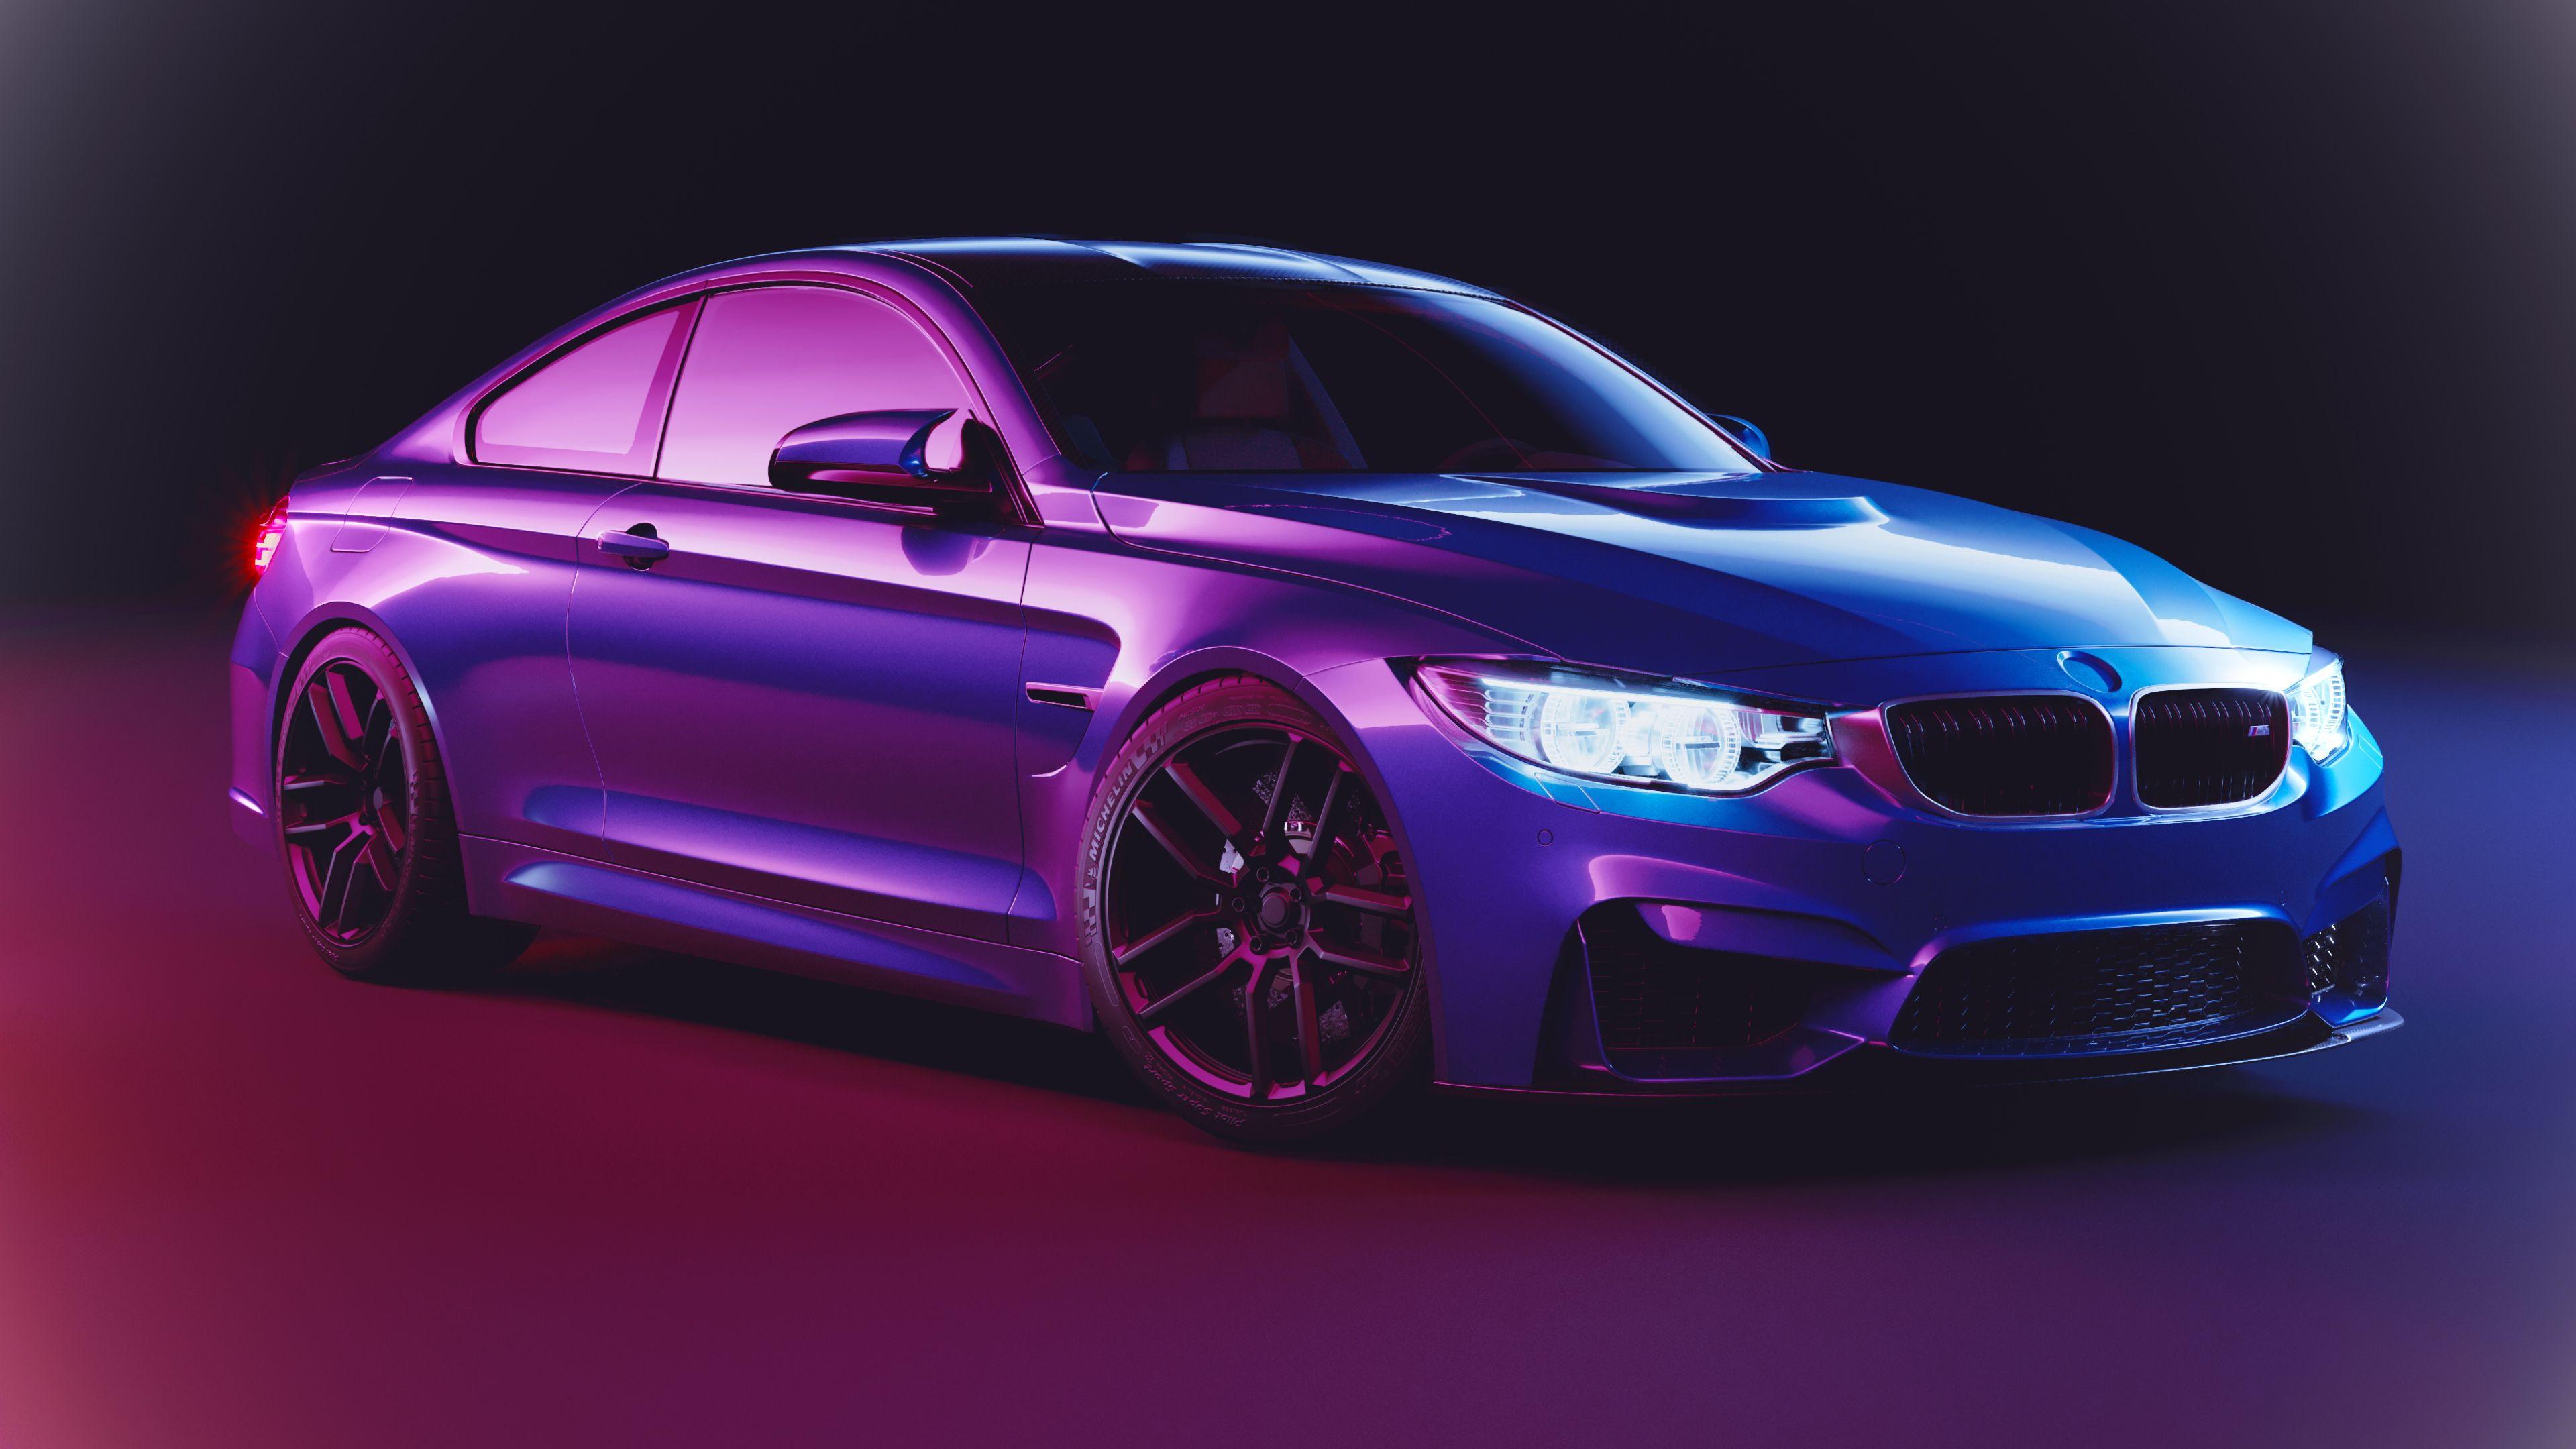 BMW M4 Wallpapers - Top Free BMW M4 Backgrounds ...